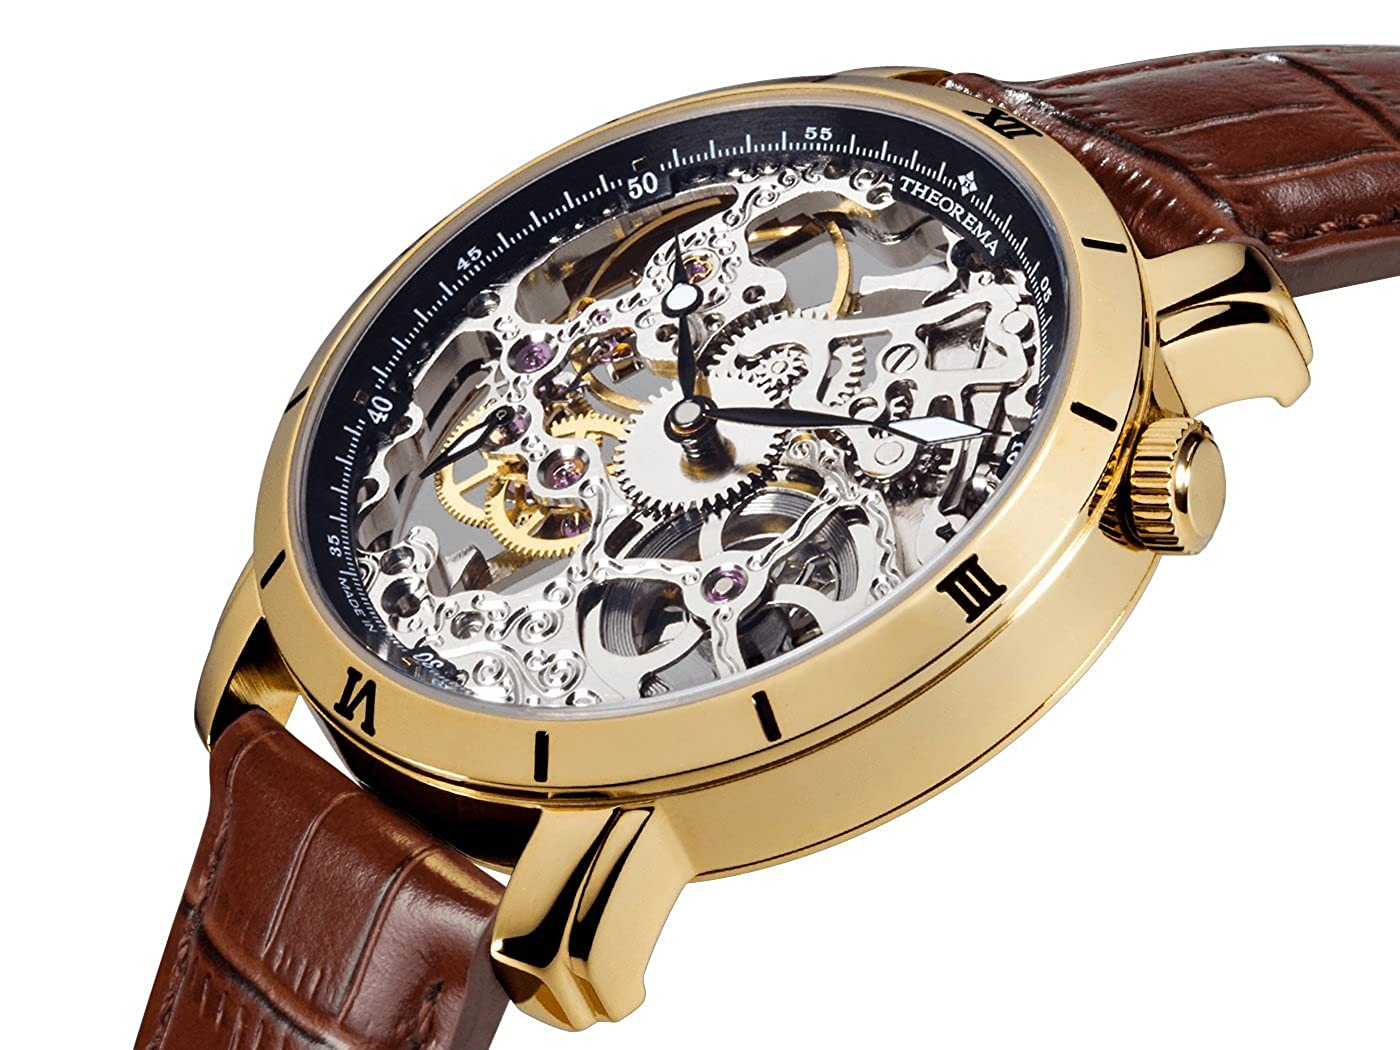 Amazon.com: Made in Germany GM-107-3 Rio Theorema Mechanical Watch: Watches